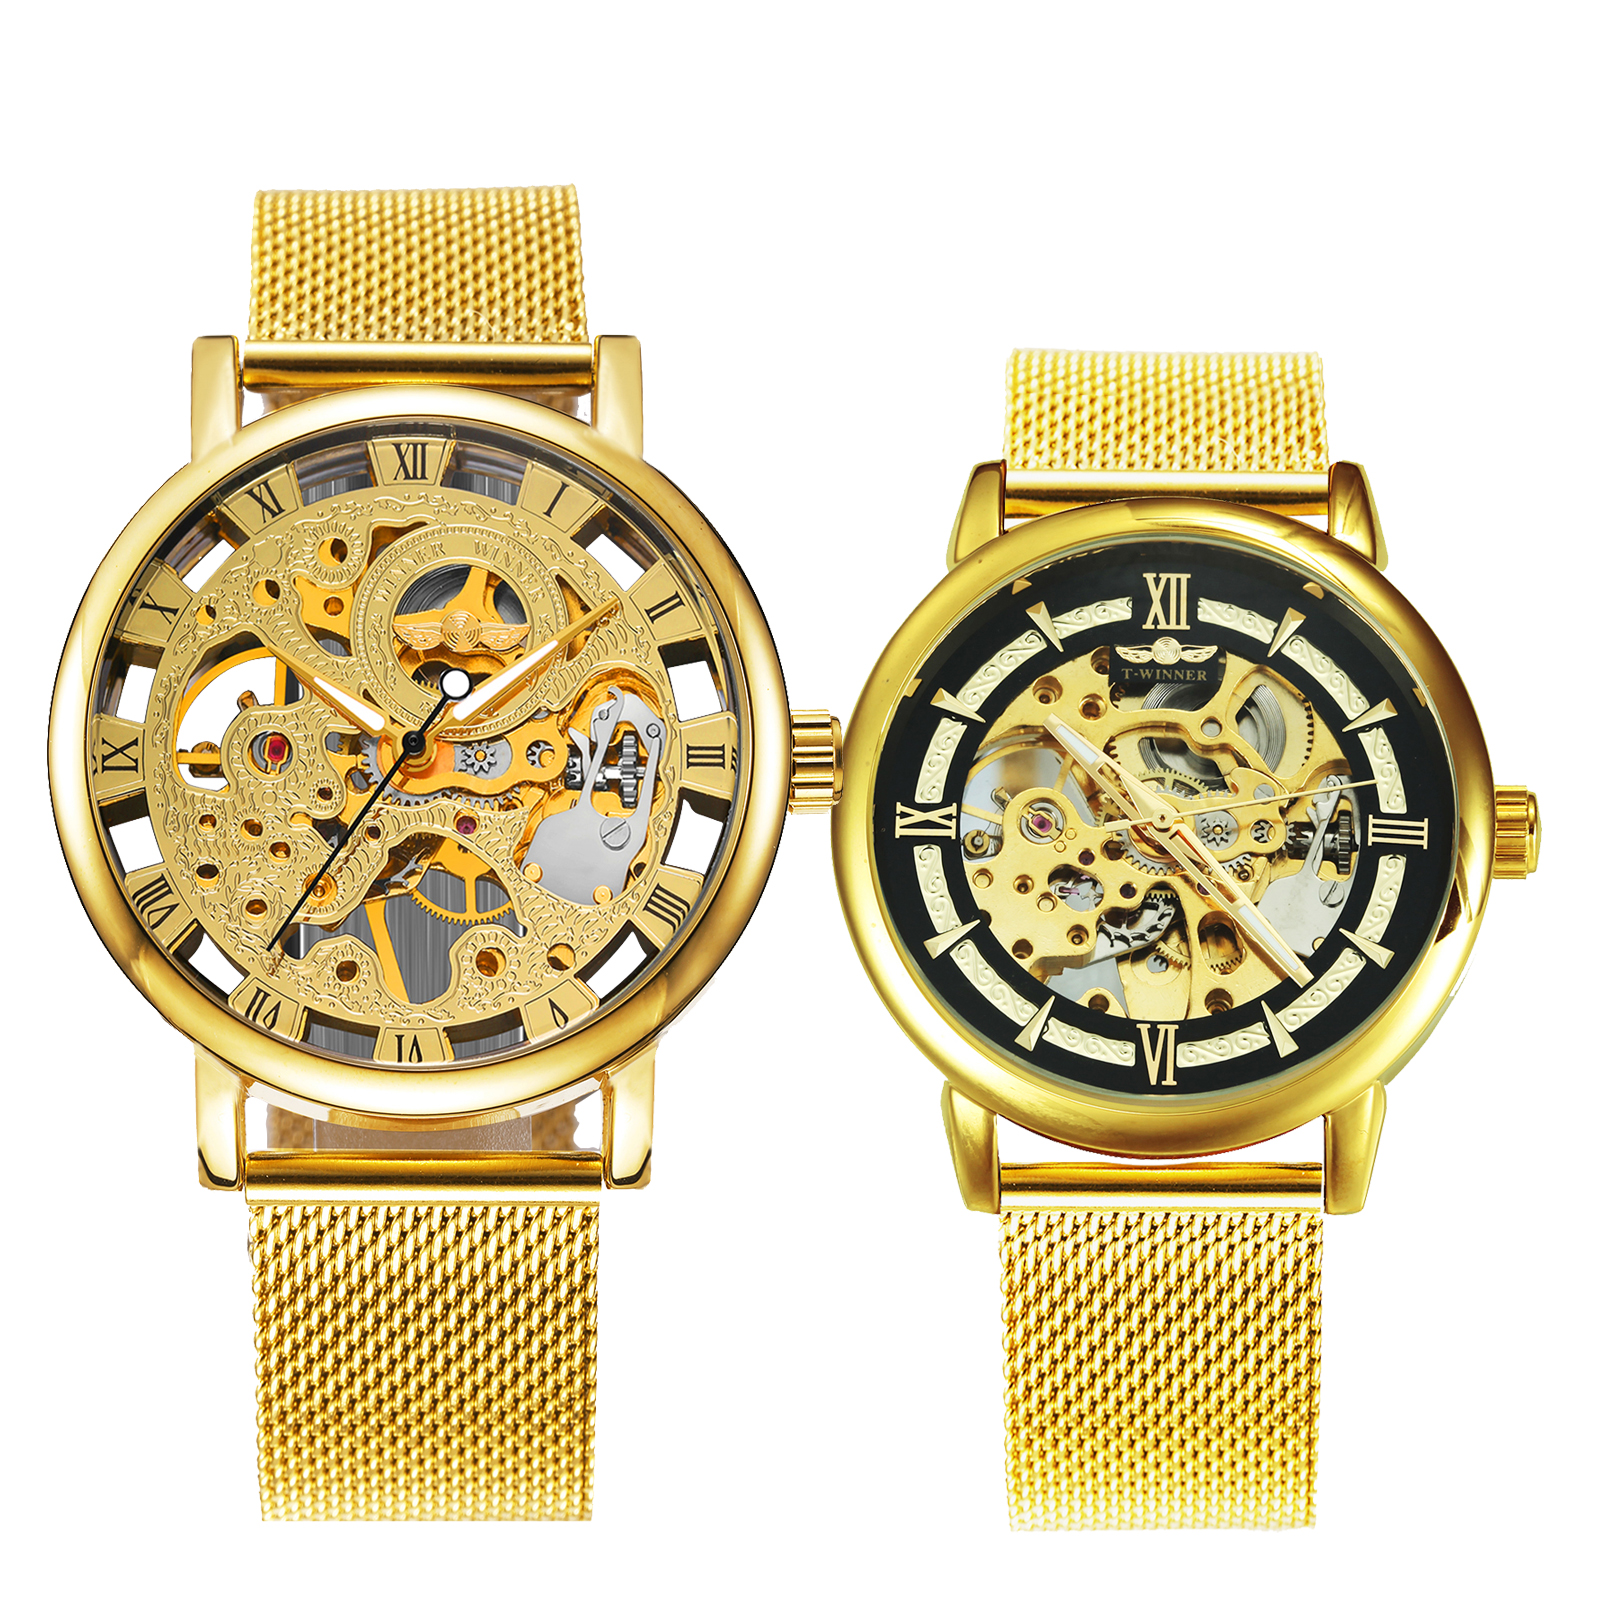 WINNER Official Couple Watch Set Fashion Mechanical Women Watch Men Ultra Thin Mesh Strap Top Brand Luxury Valentine's Day Gift